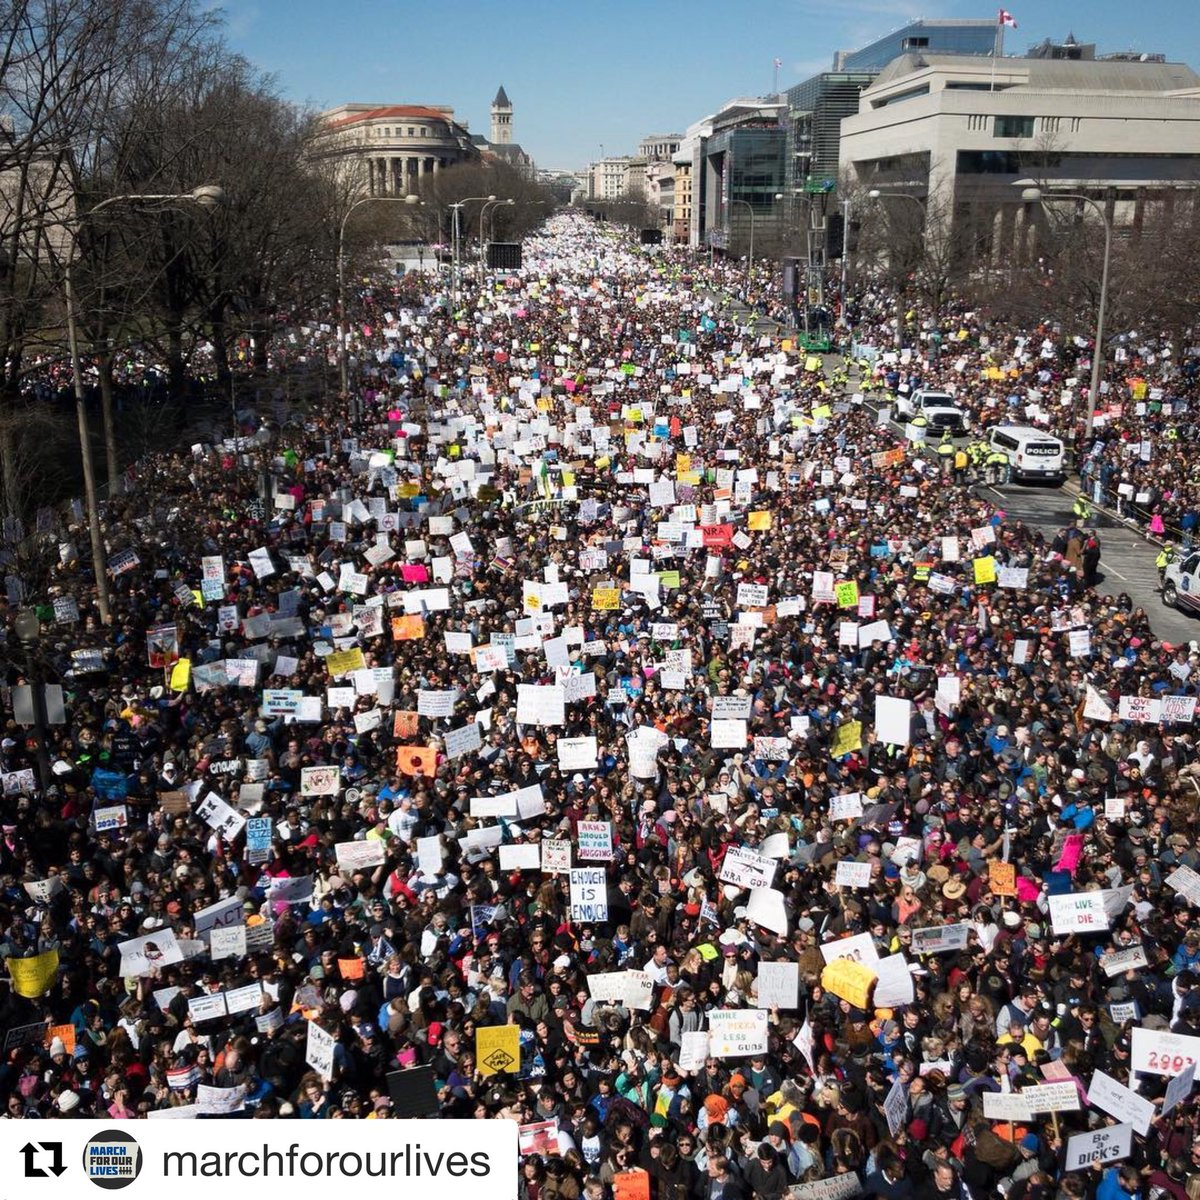 Humbled and proud of this generation taking the lead. Their time is now. #MarchForOurLives